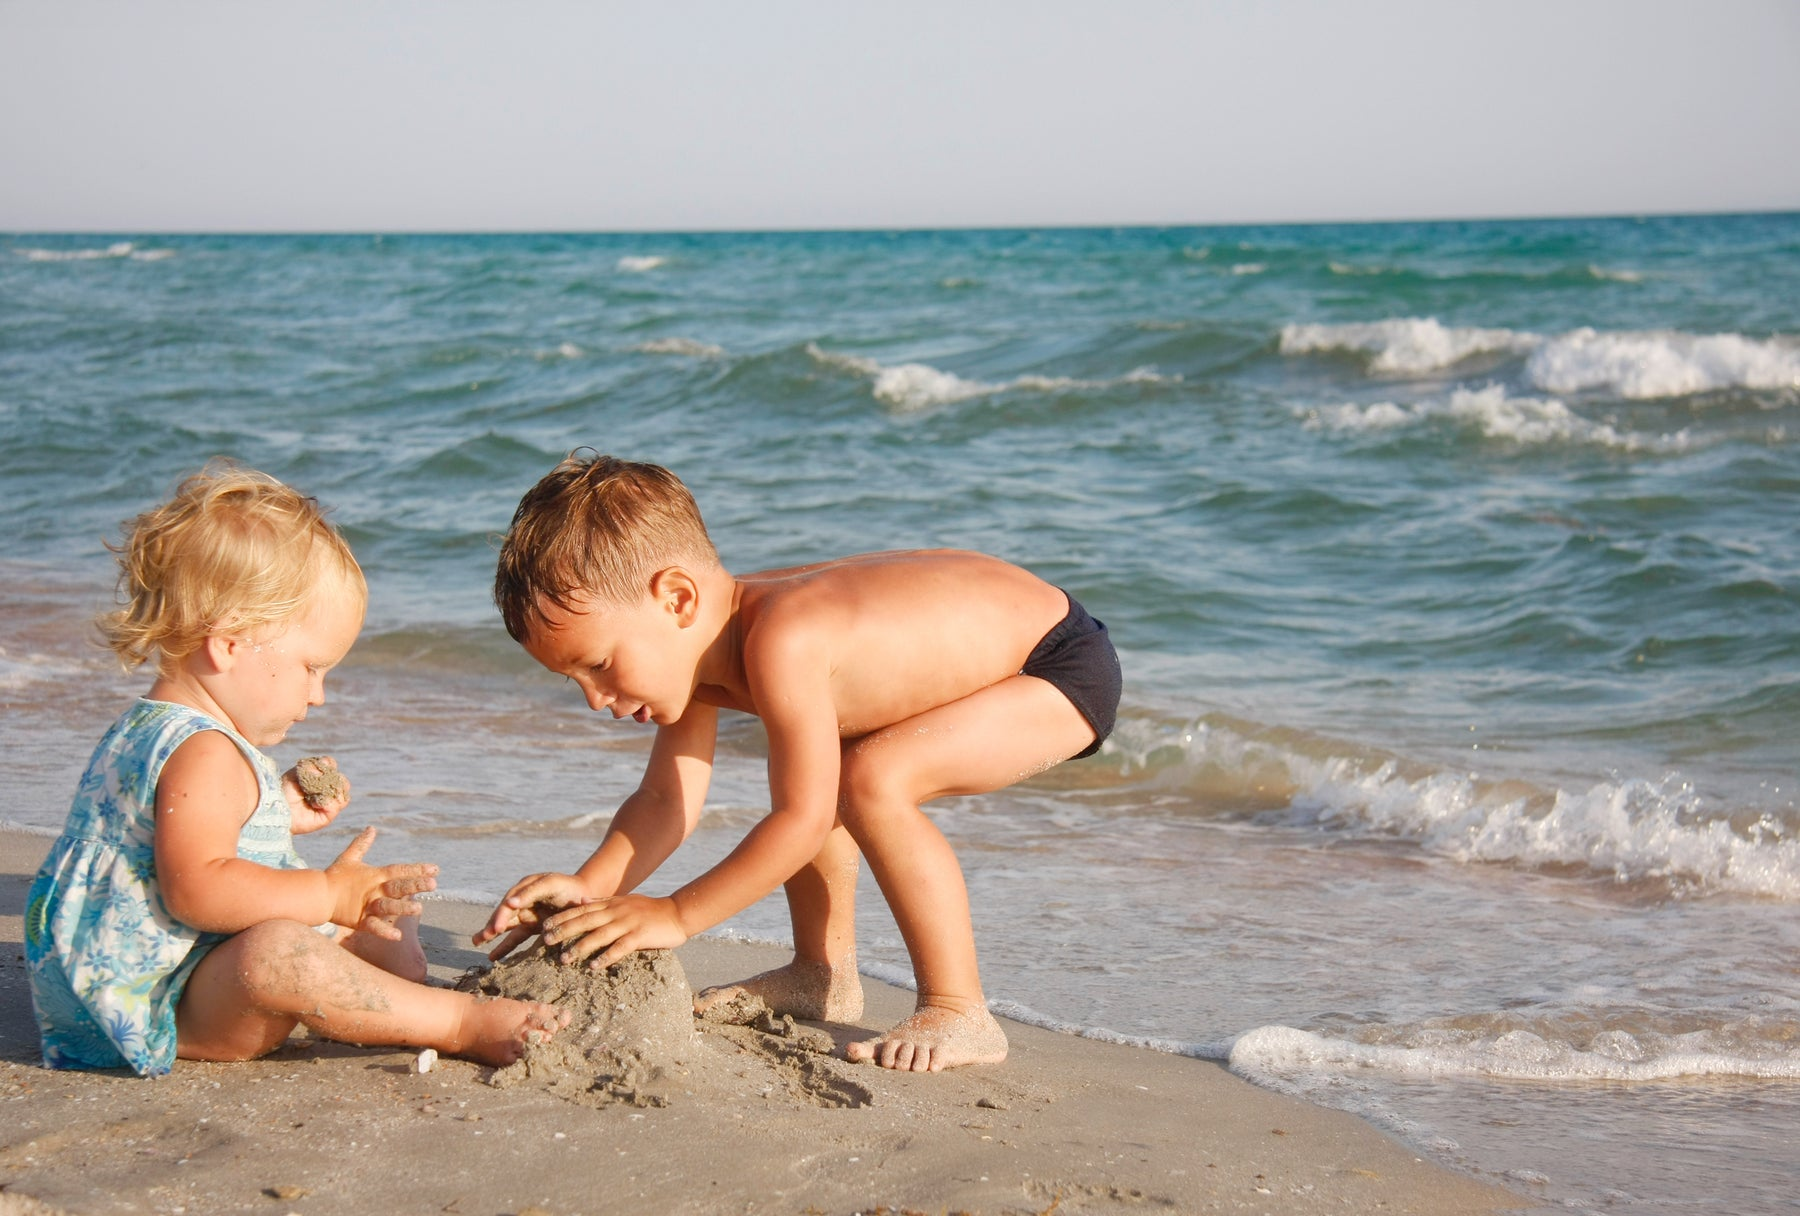 5 Things to Do With Your Kids Before Summer Ends